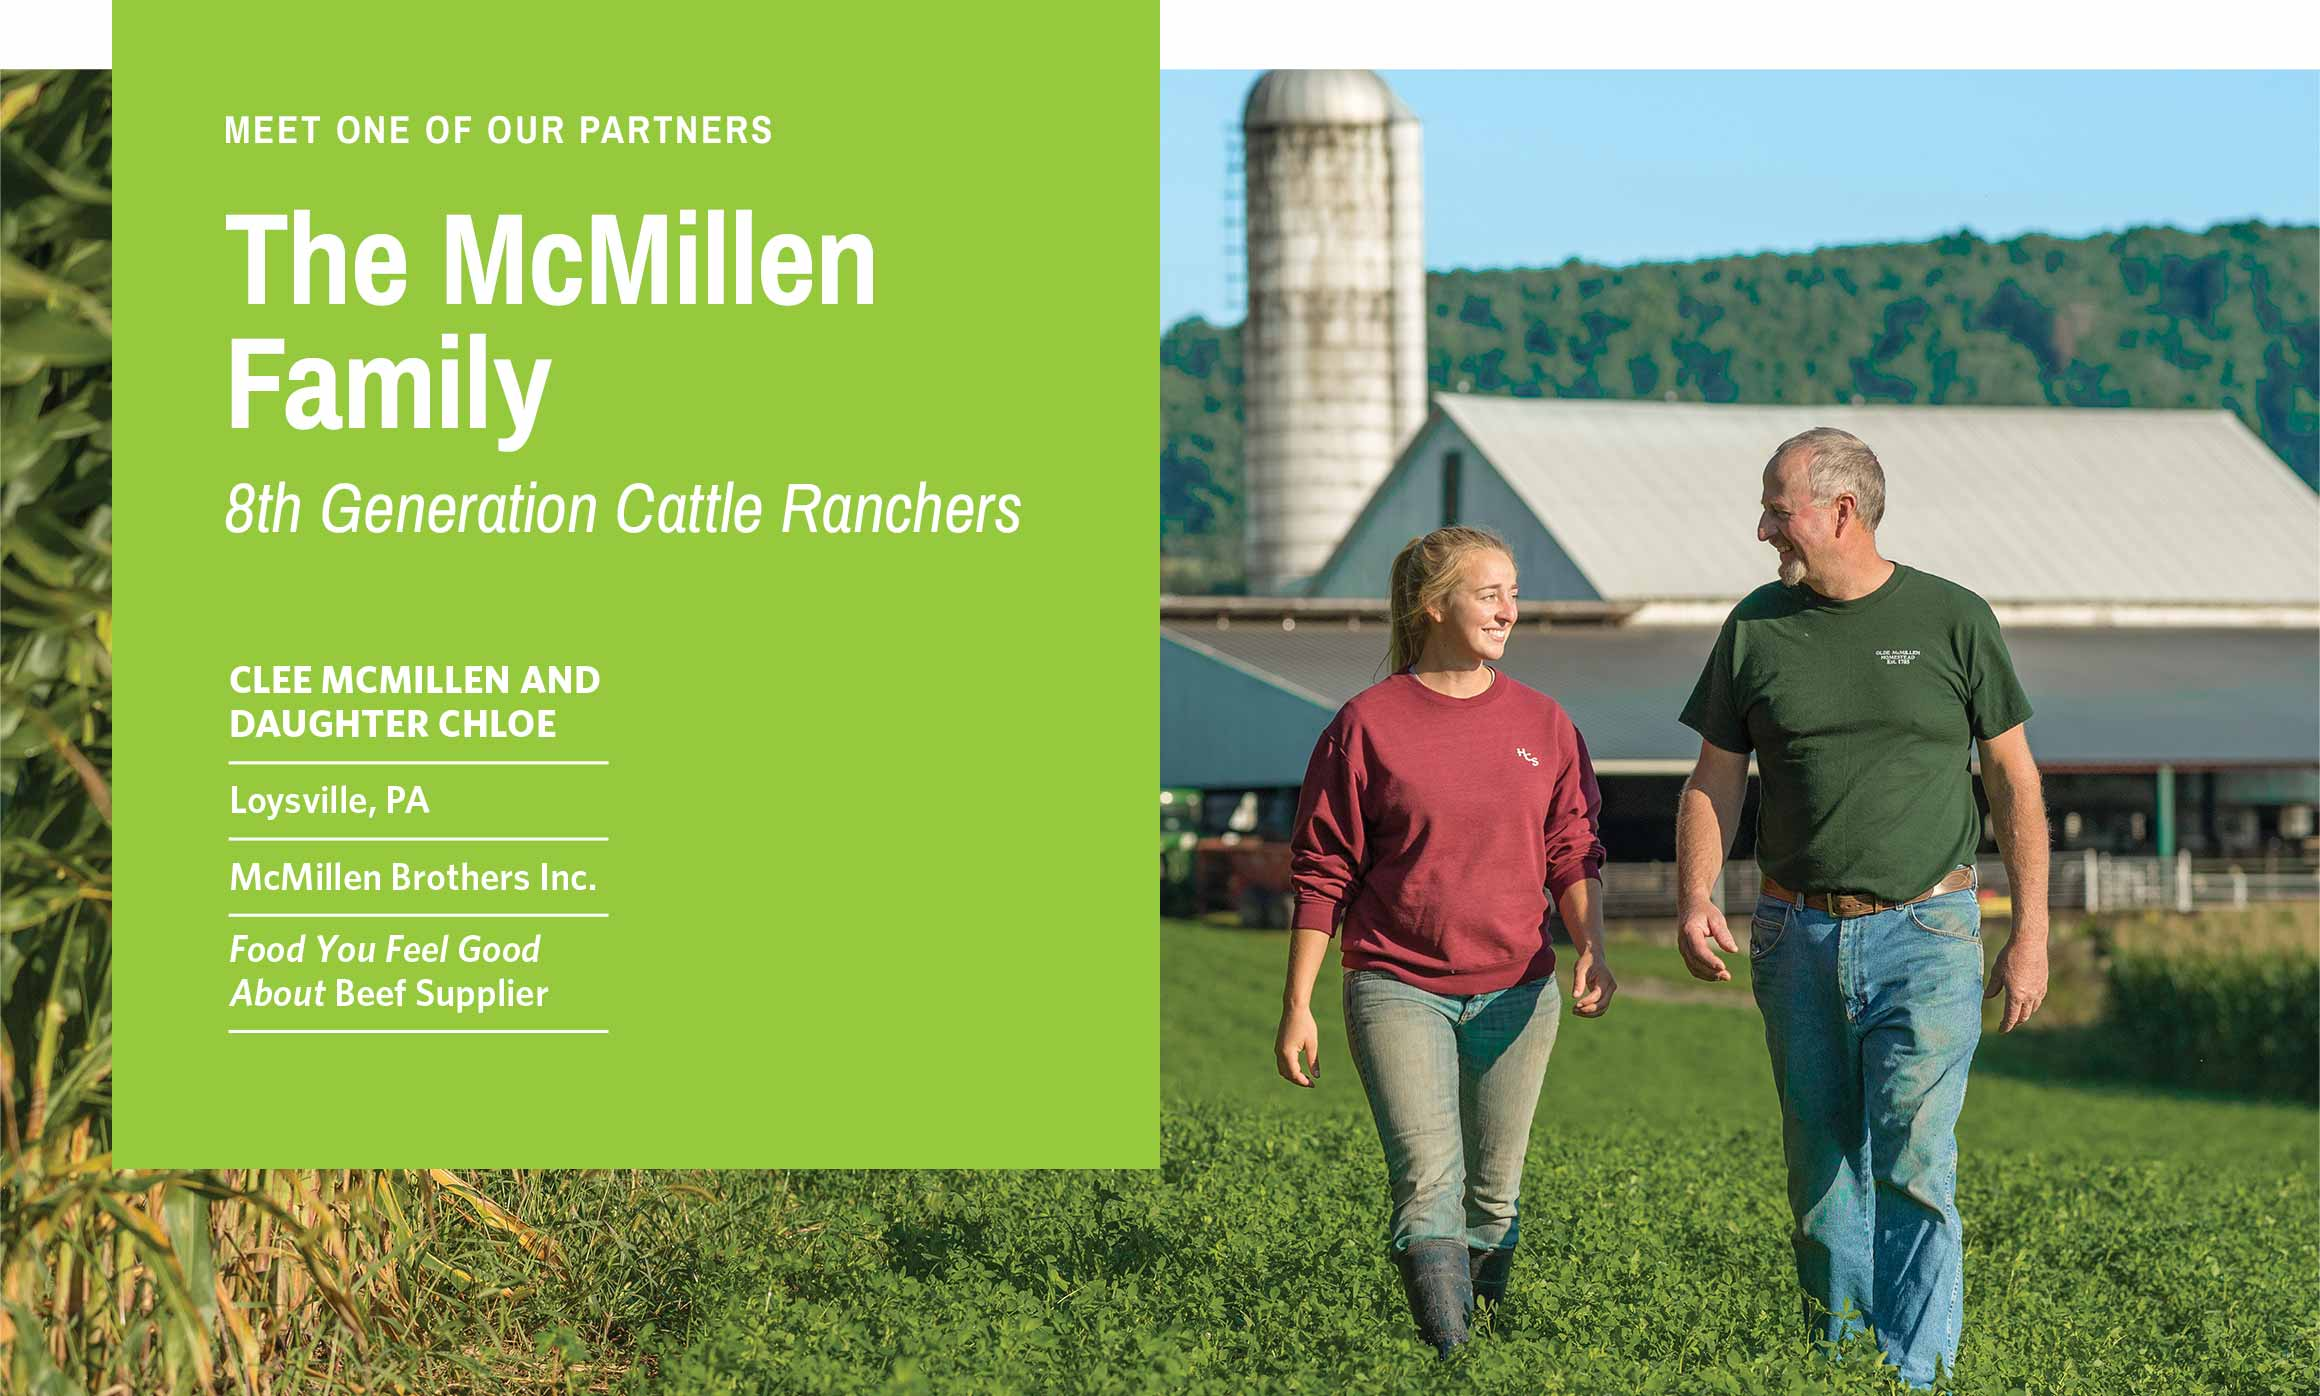 The McMillen Family